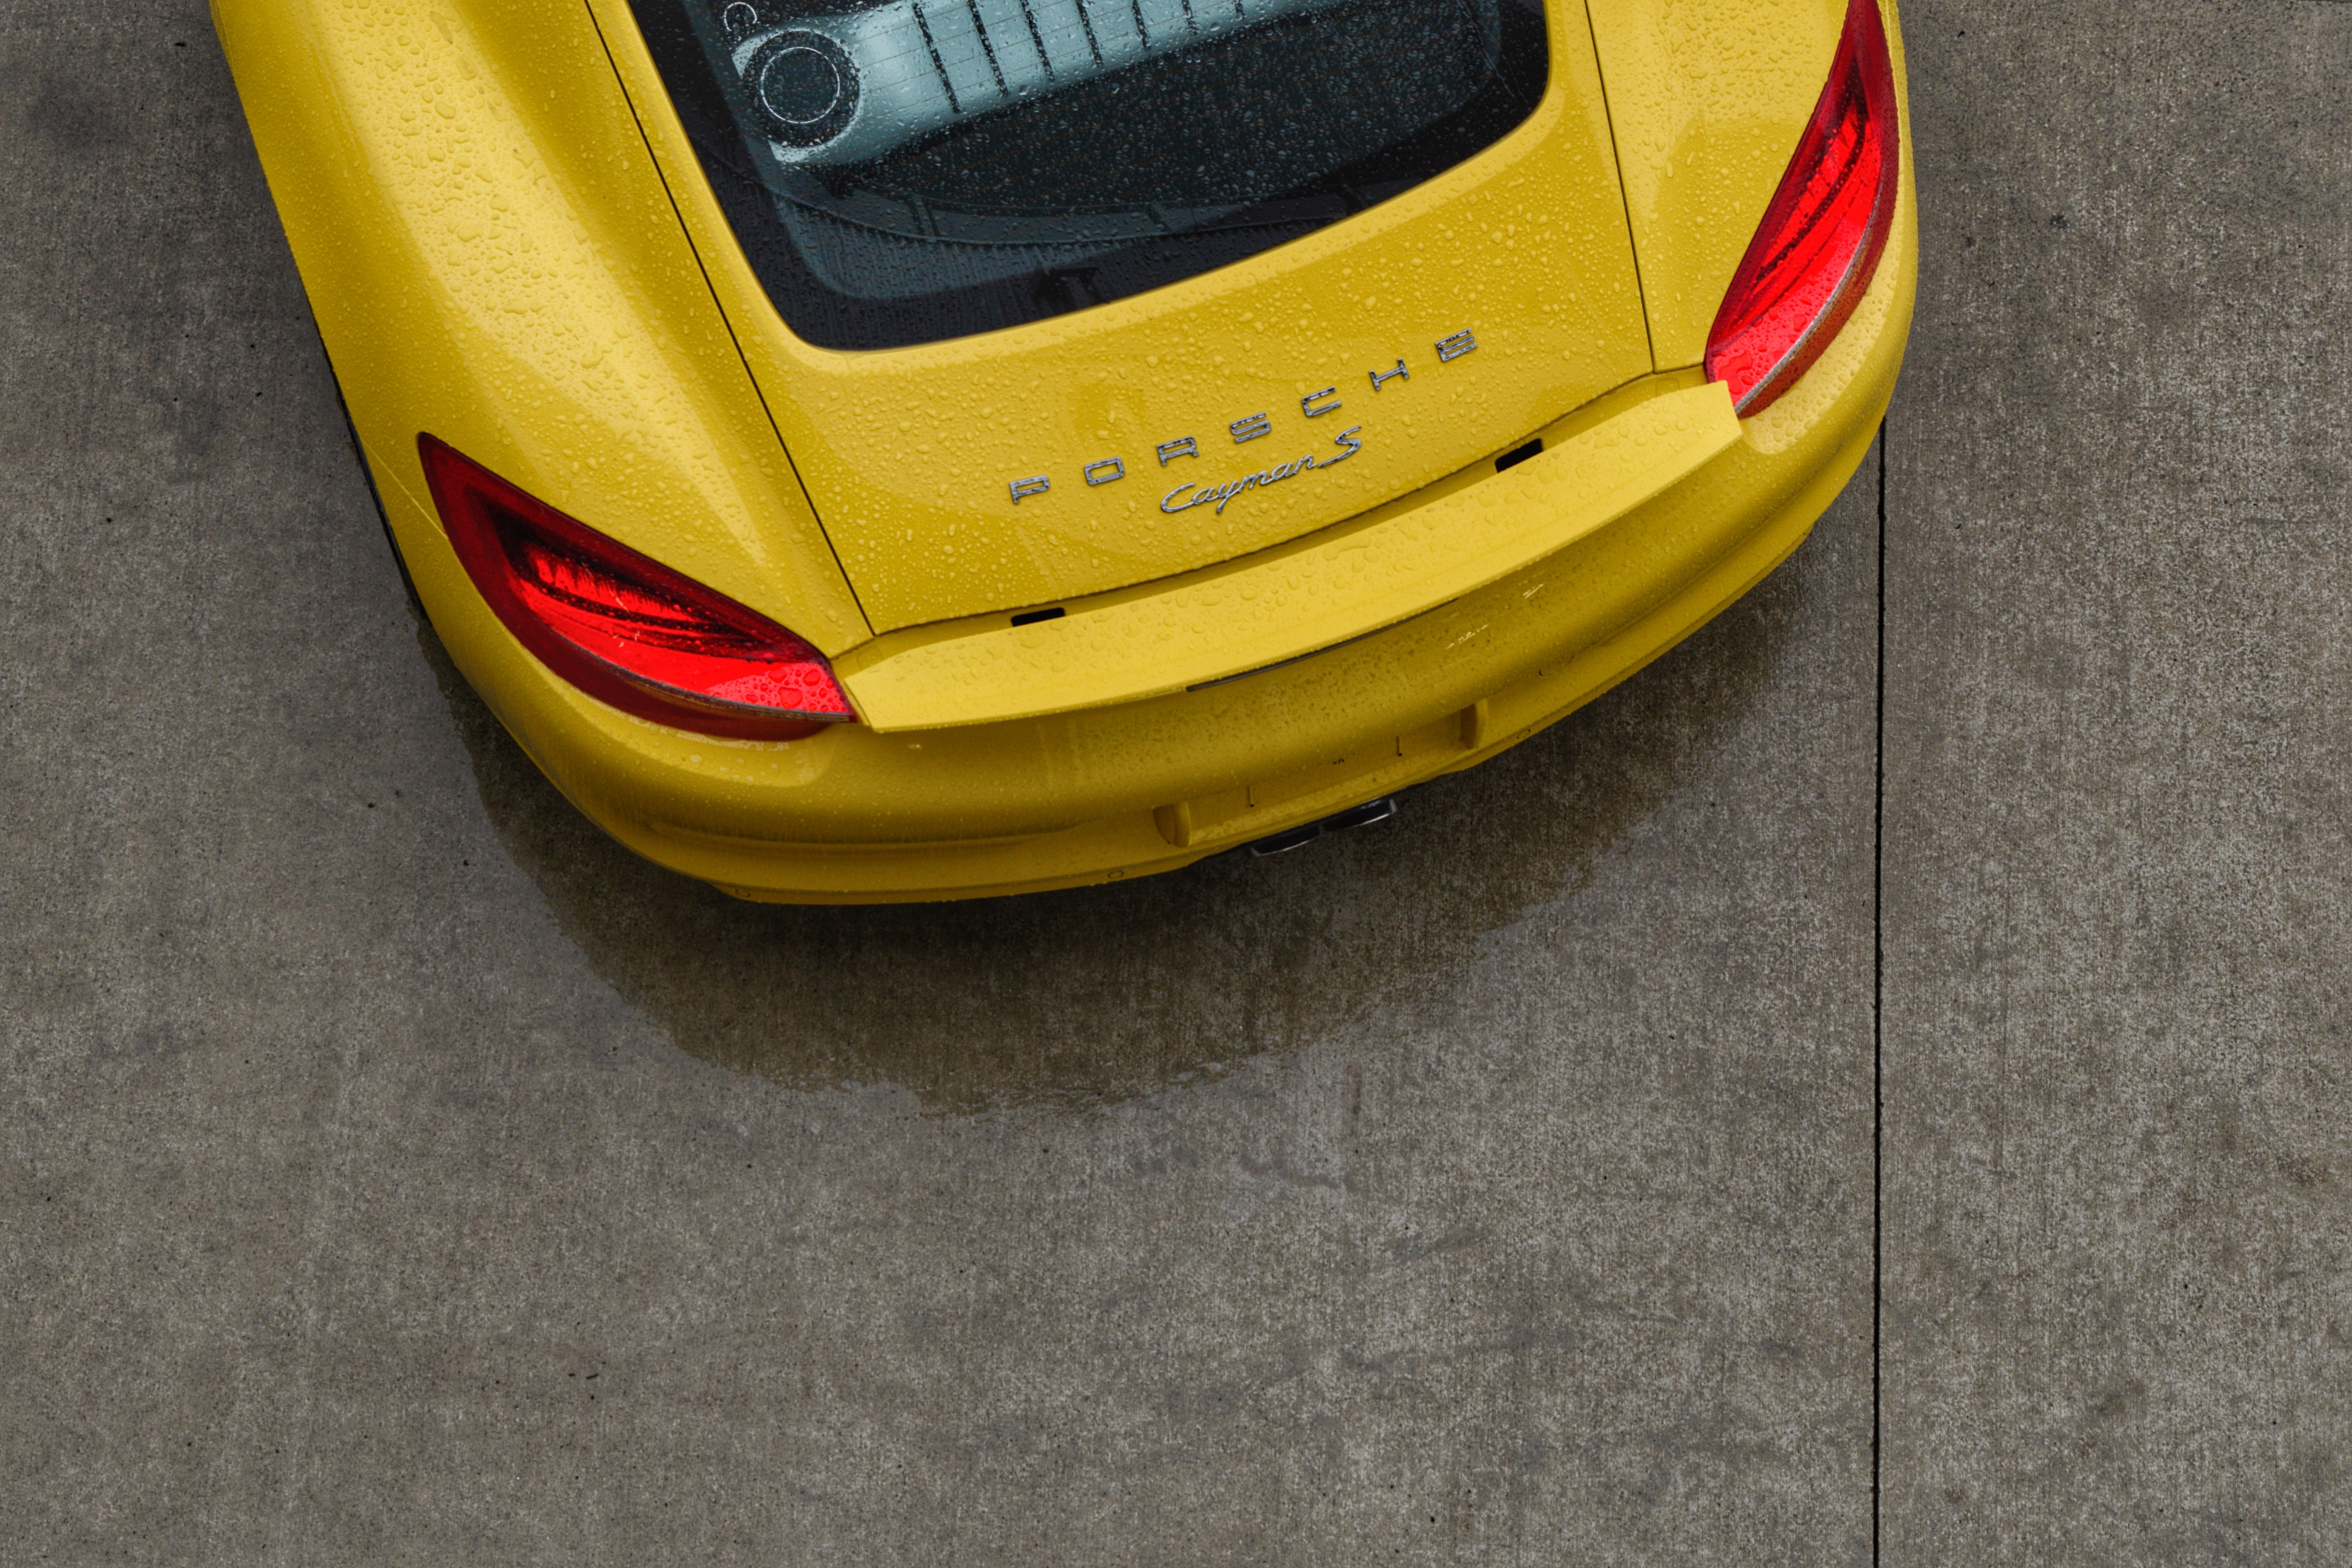 yellow Porche car parked on road